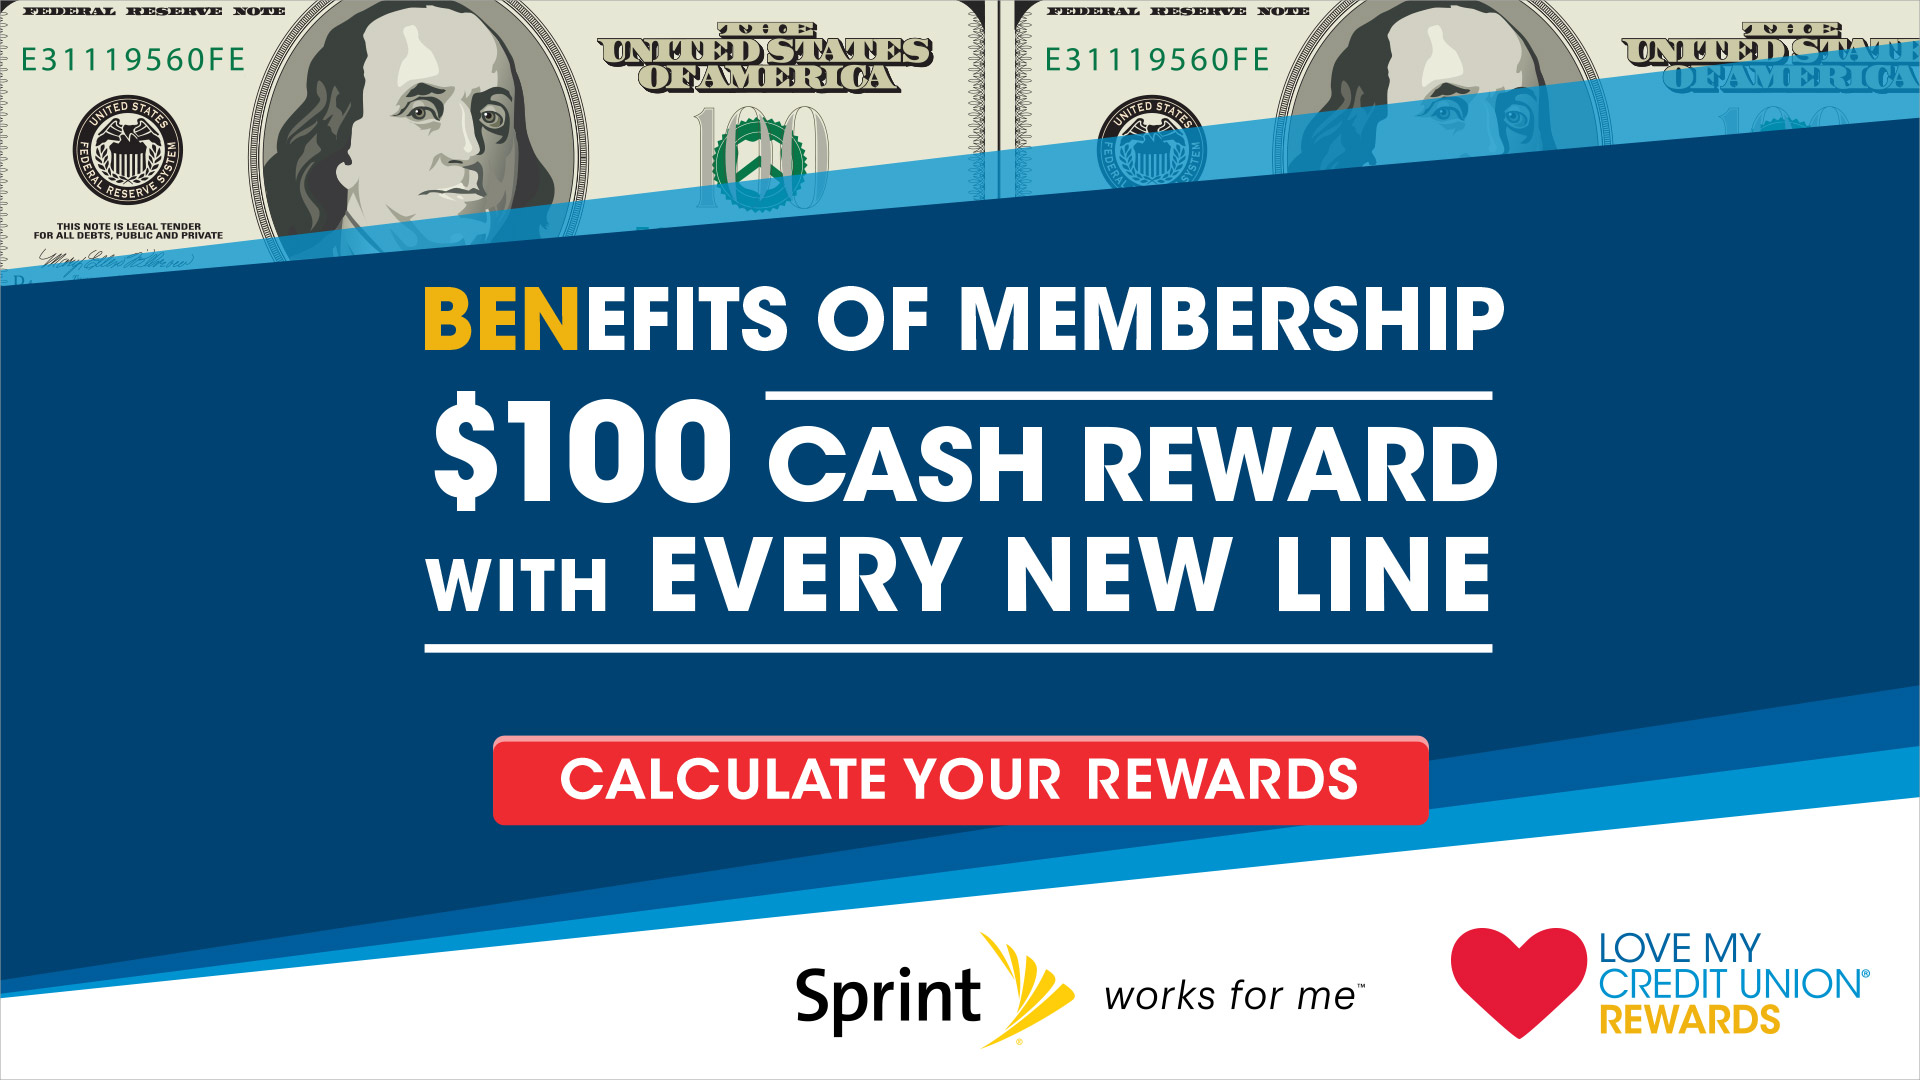 BeneFits of Membership $100 Case Reward with every new line opened with Sprint  and Love My Credit Union Rewards